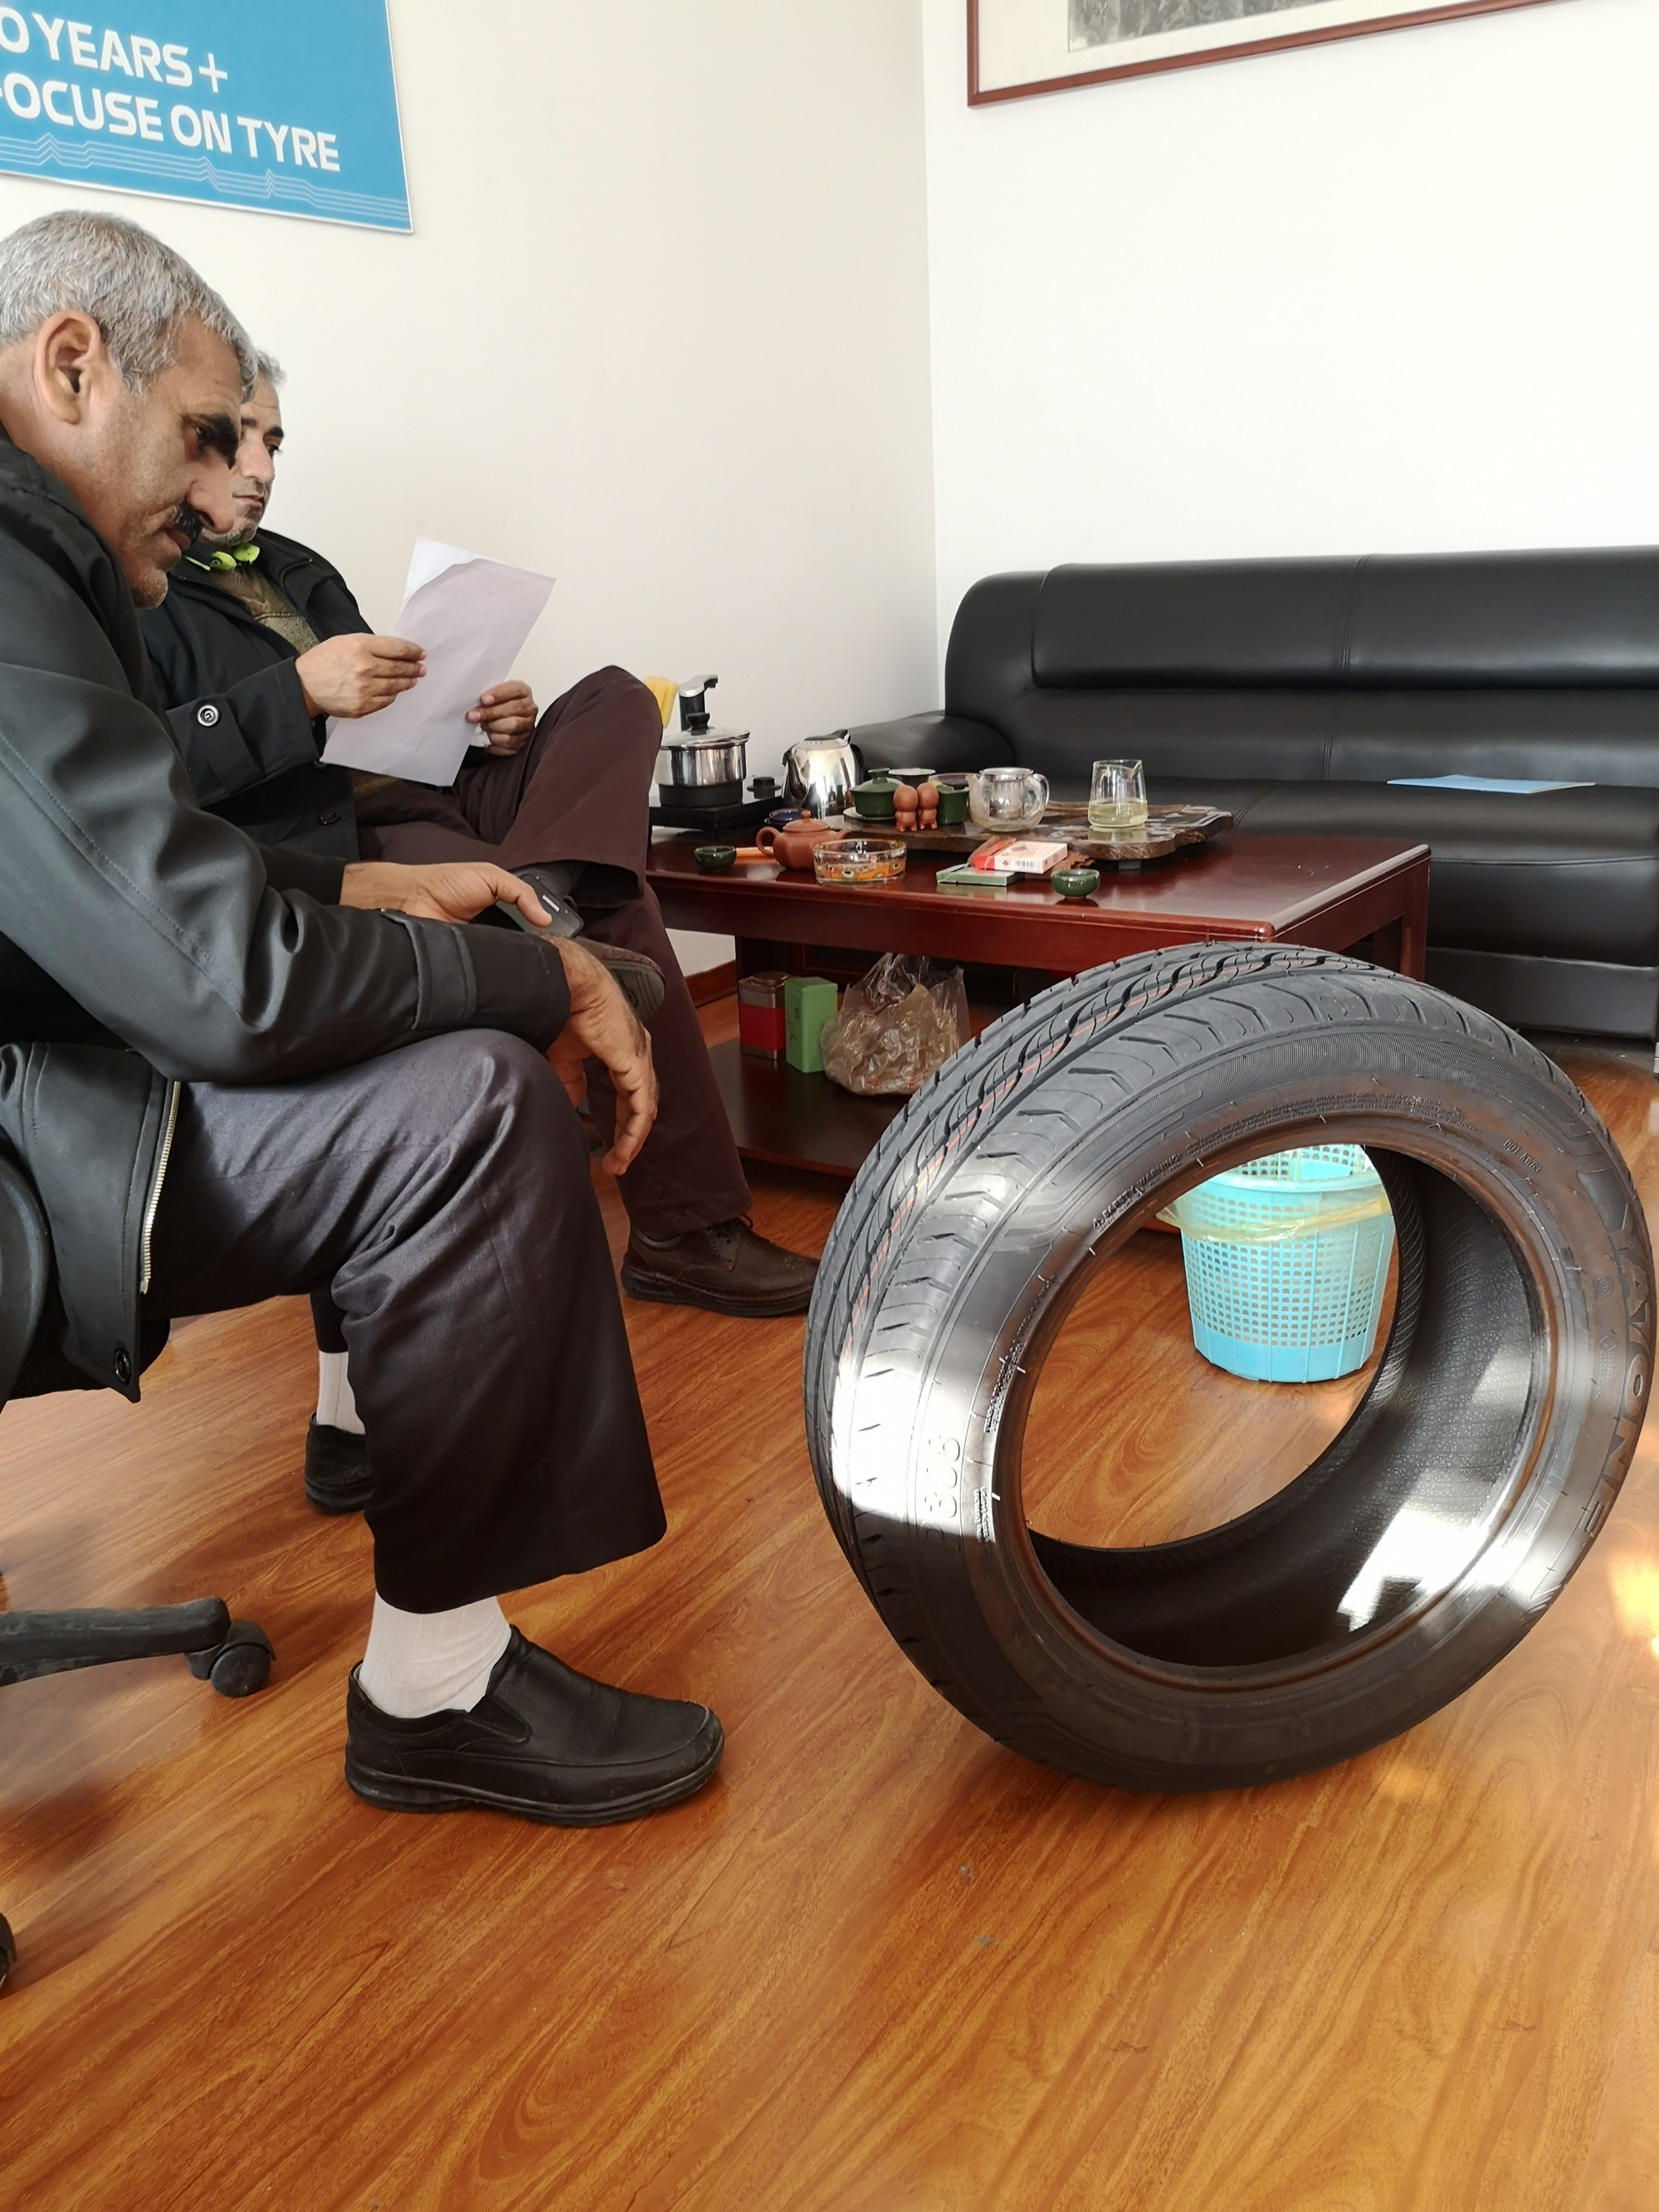 Customers from Iran visit Kelucktyre